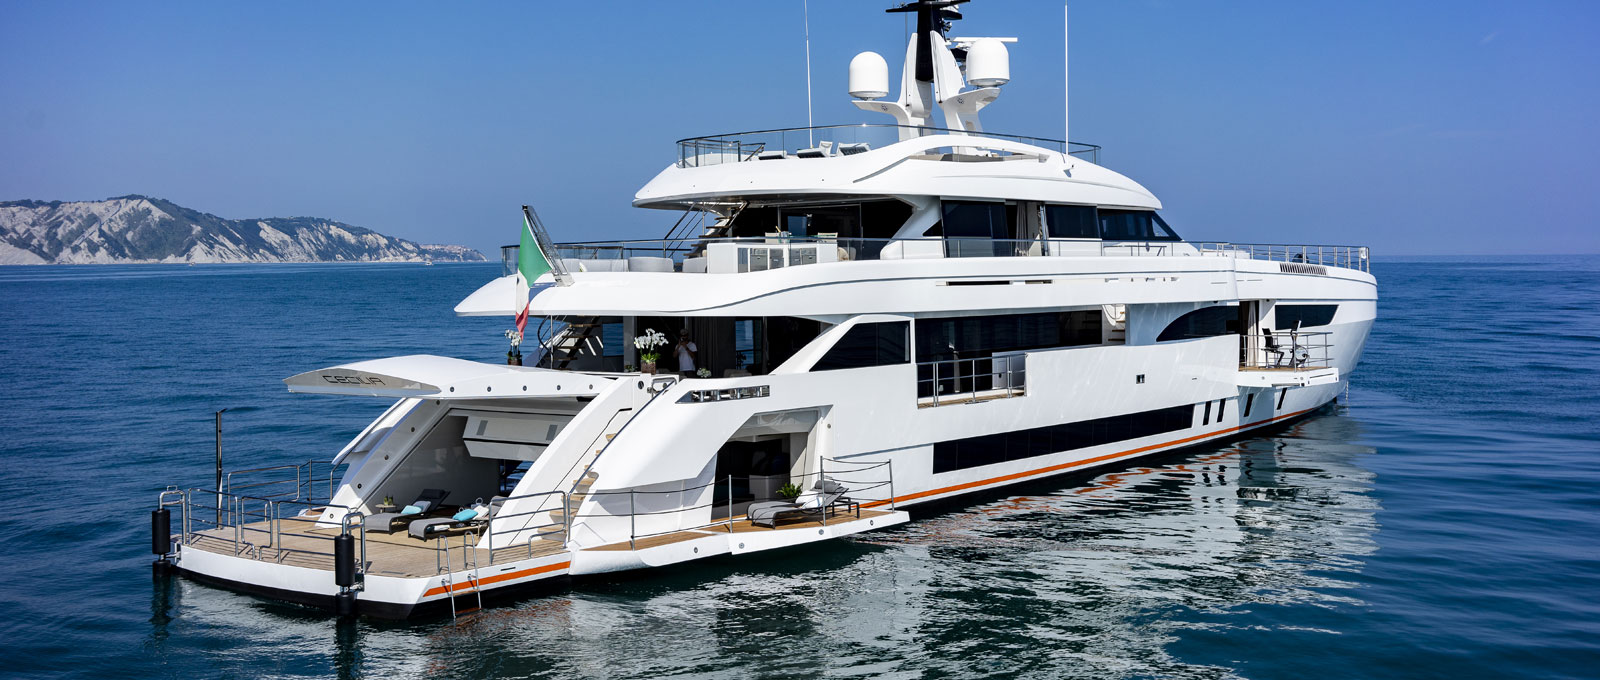 Wider Yachts